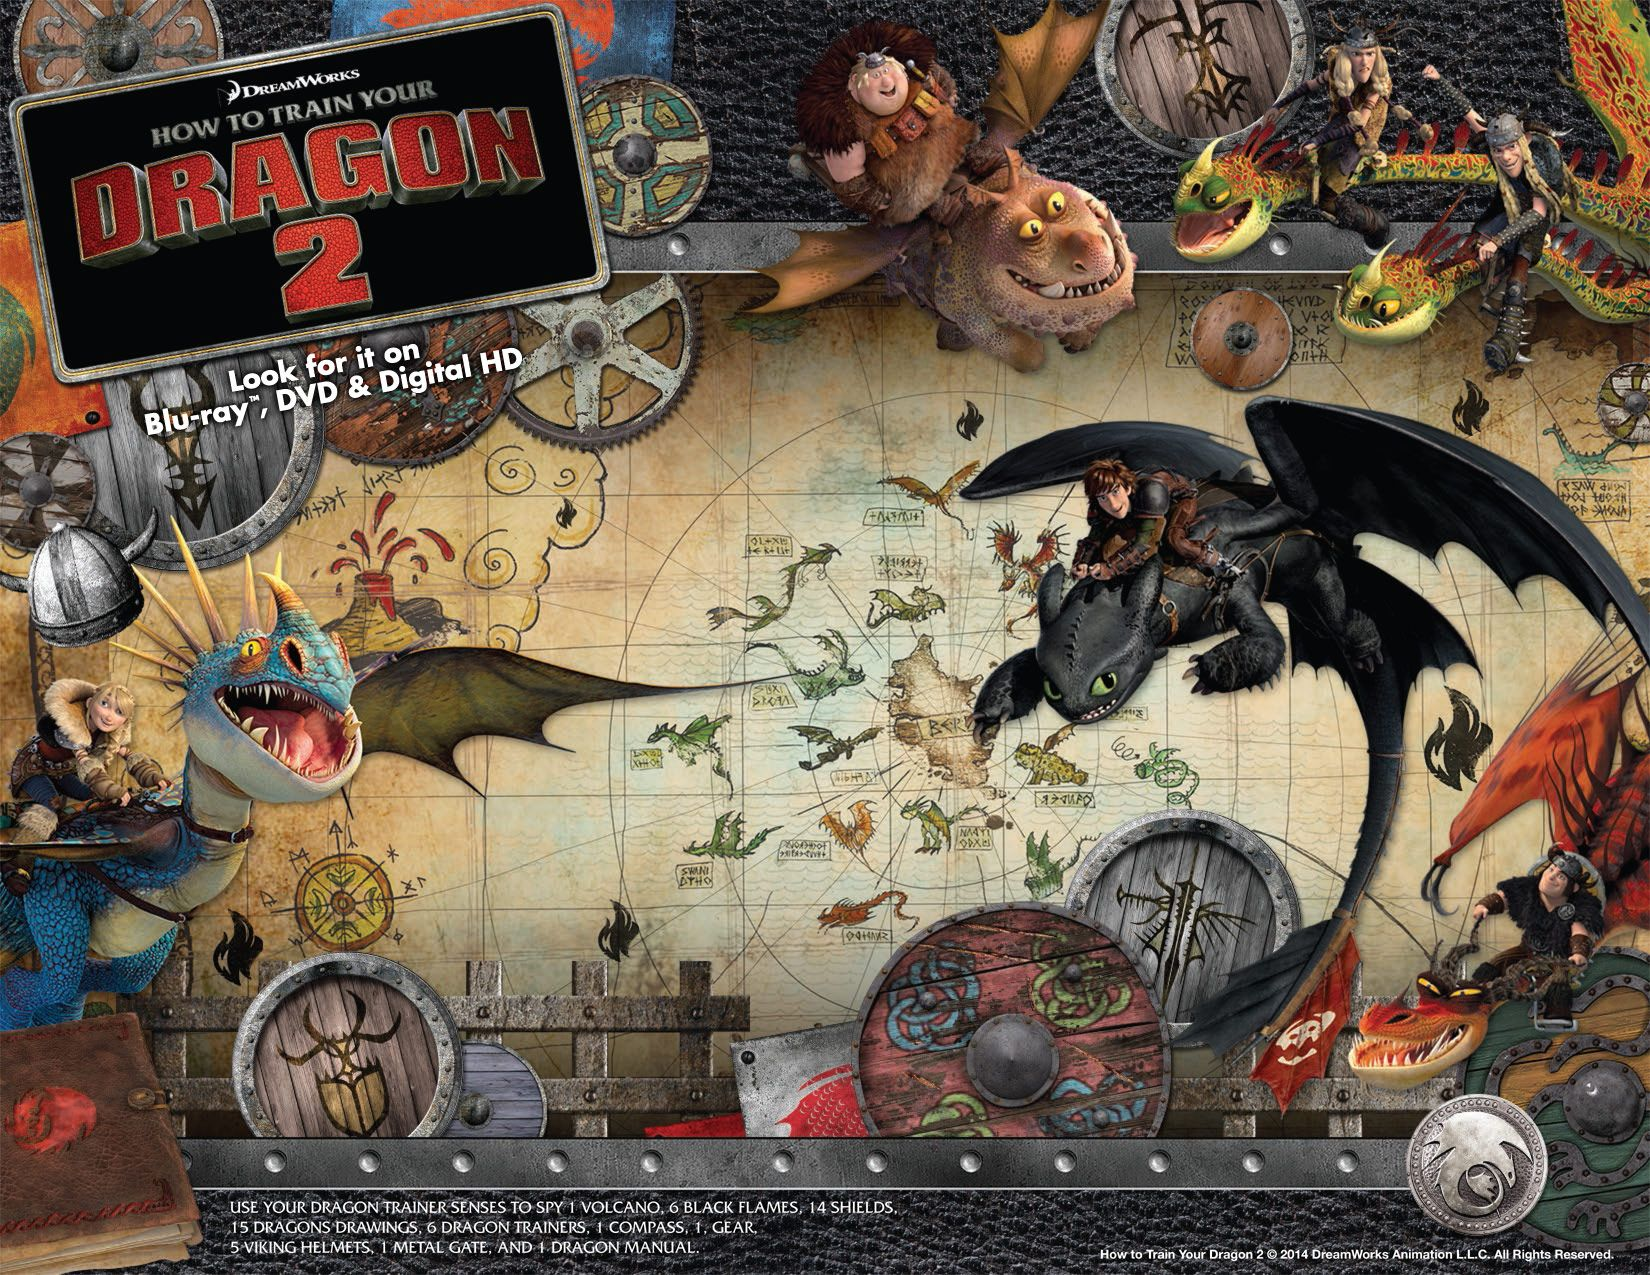 Can you find all of the items listed at the bottom of this page can you find all of the items listed at the bottom of this page amongst all the characters and creatures from how to train your dragon ccuart Gallery